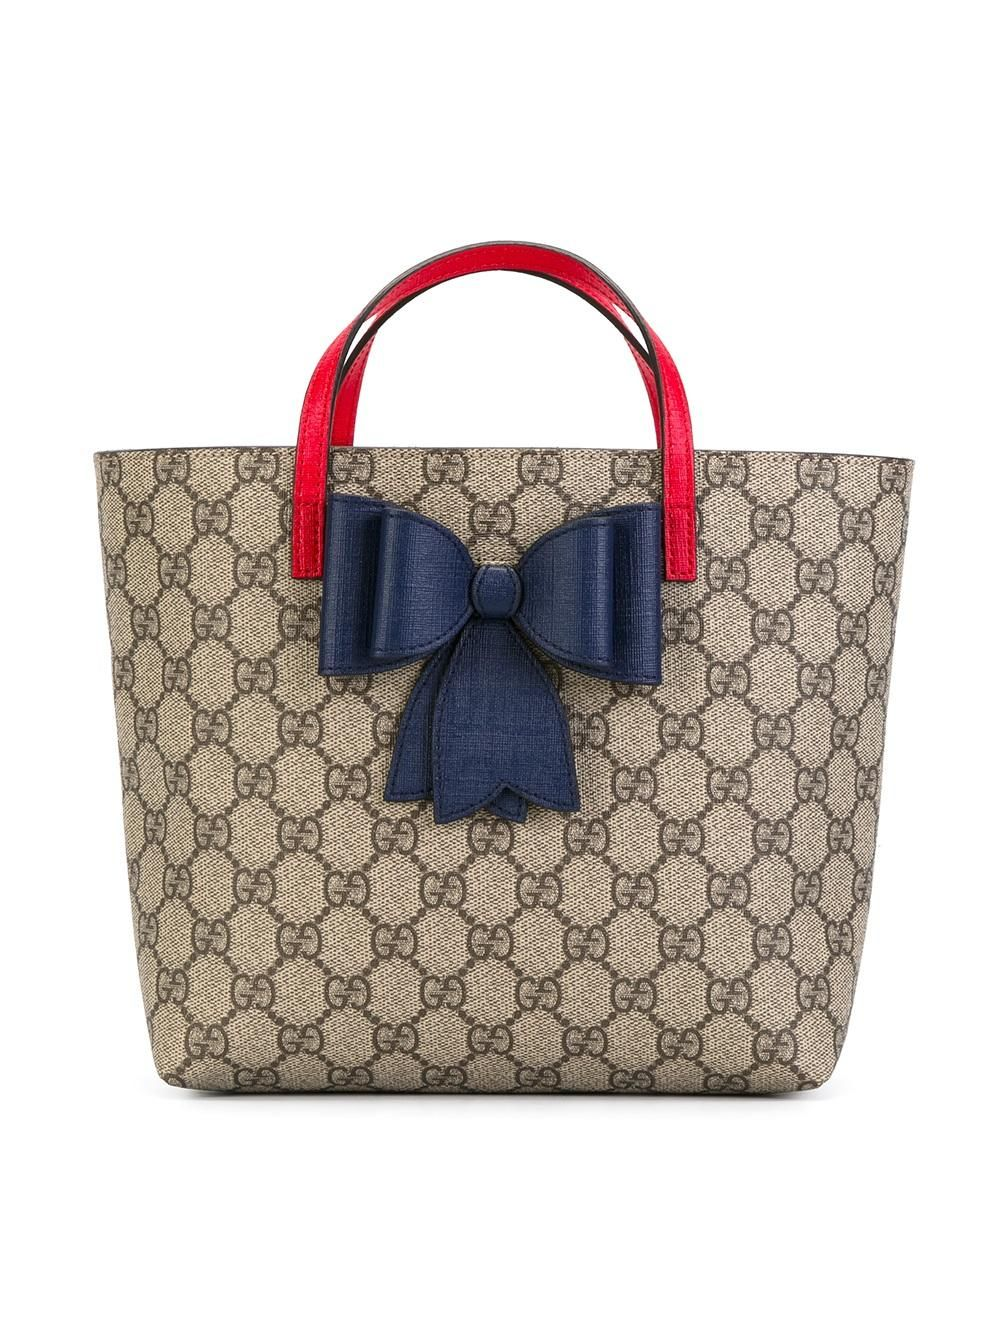 d1ac2d069f5e #gucci #kids #gg #tote #bag #bow #blue #red #detail #style www.jofre.eu